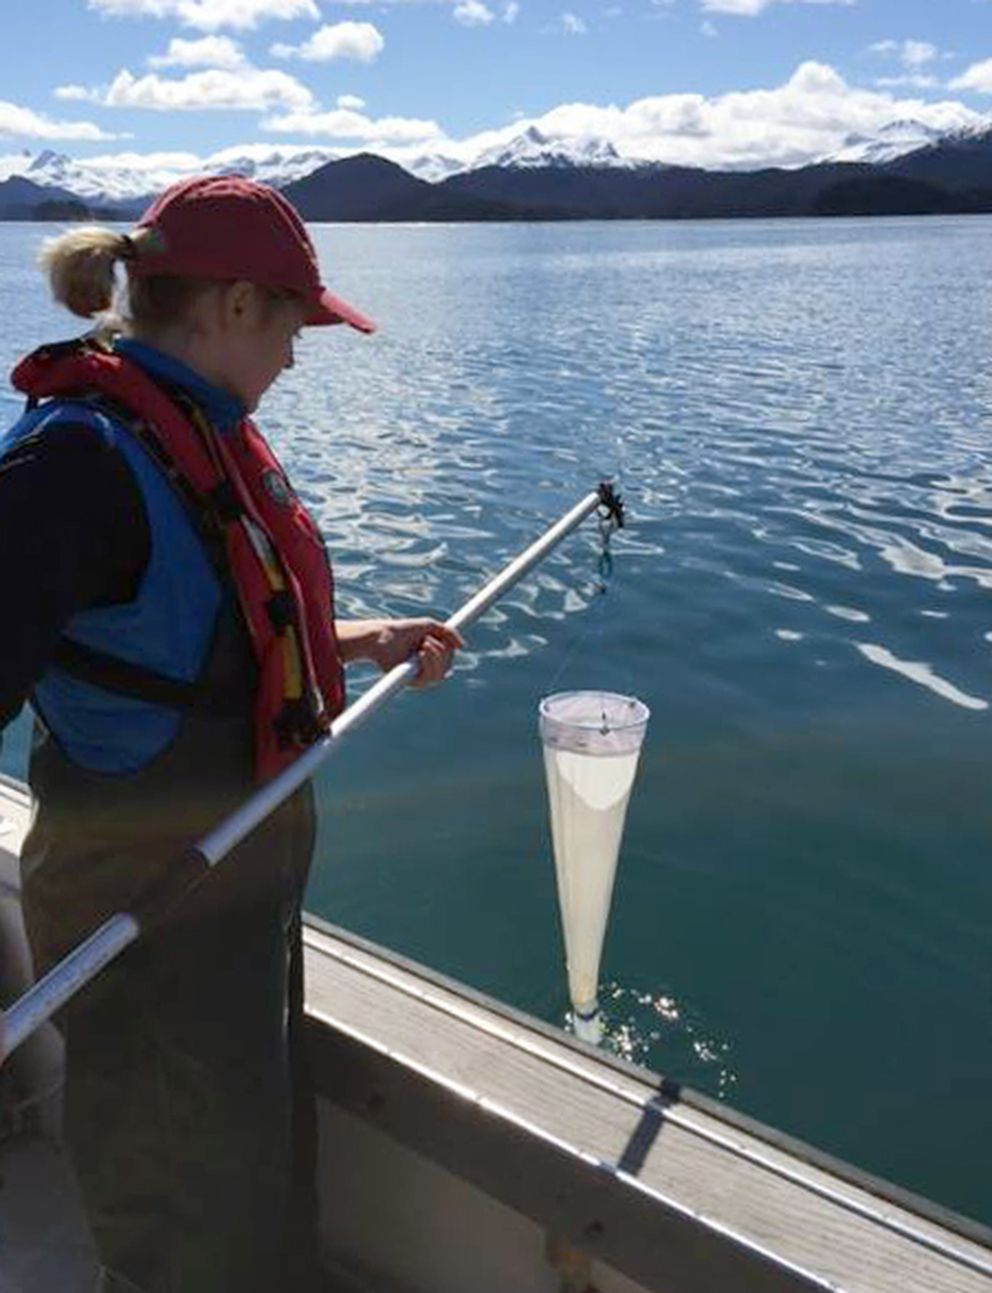 Rosie Robinson with Kachemak Bay National Estuarine Research Reserve does a plankton tow to monitor for harmful algal species in the bay last August. (Kachemak Bay National Estuarine Research Reserve)